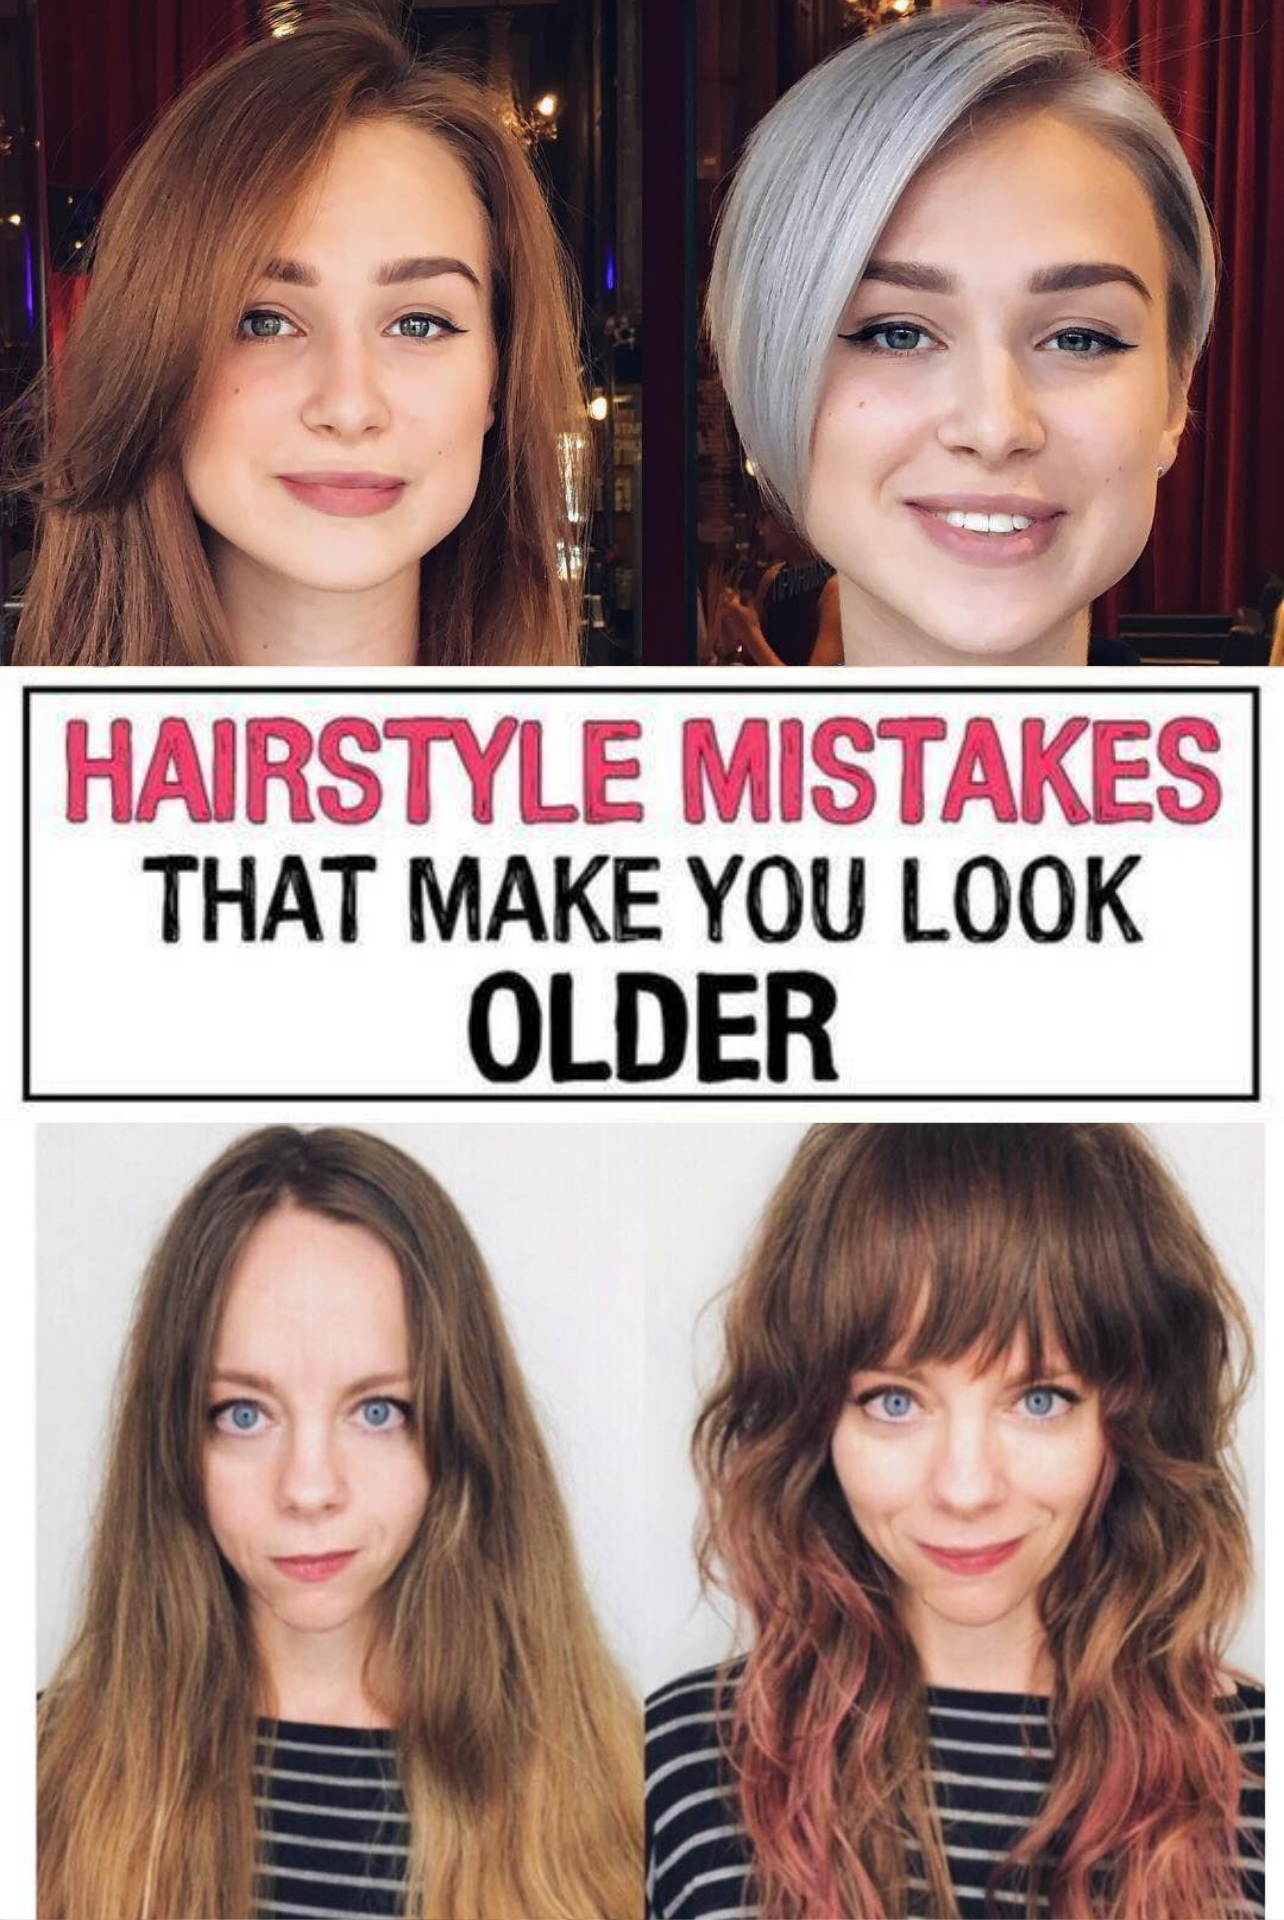 11 Hairstyle Mistakes That Are Aging You In 2020 Hair Advice Mom Hairstyles Hair Mistakes